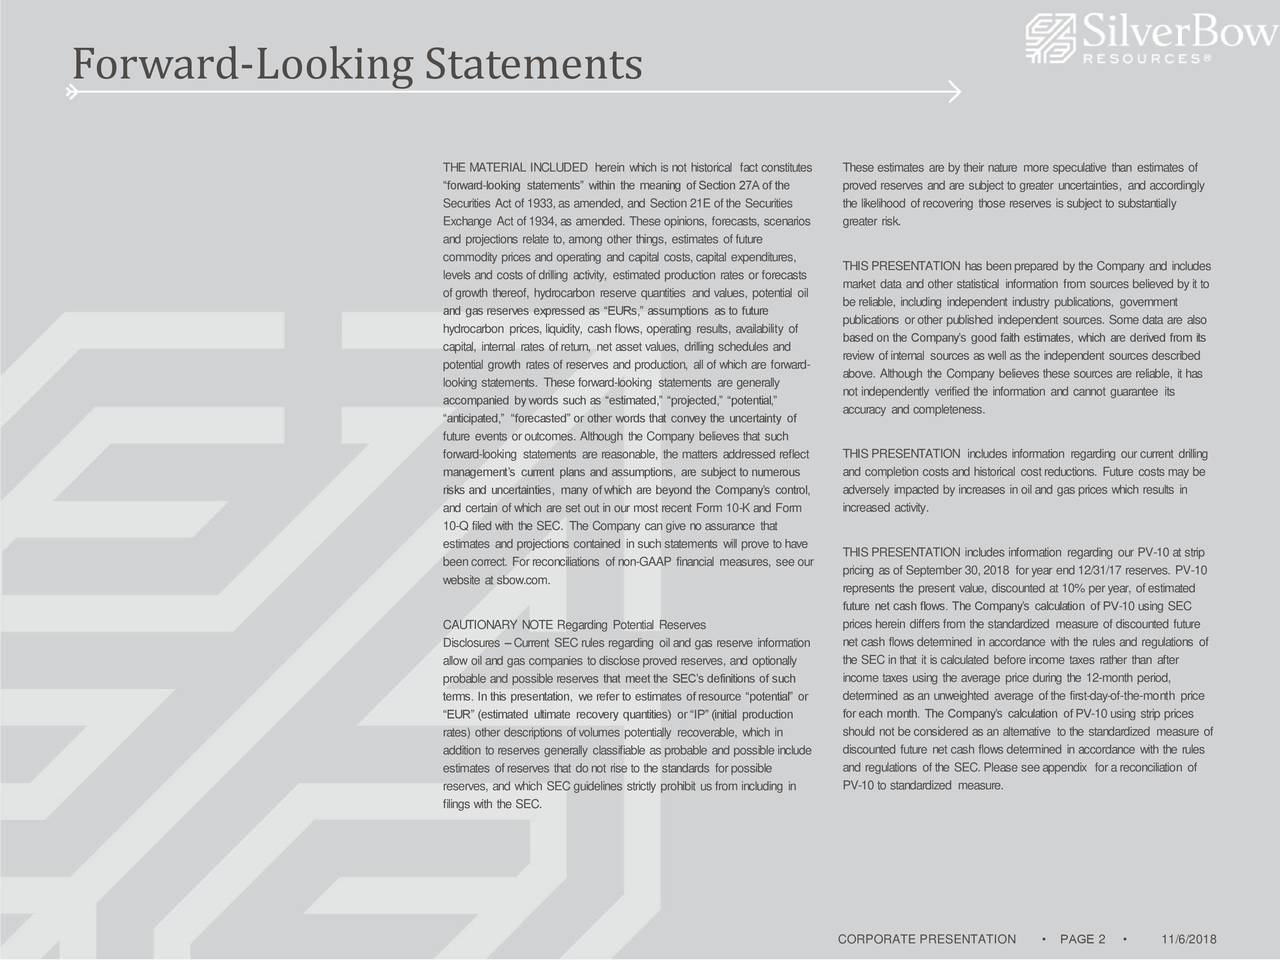 """THE MATERIAL INCLUDED herein which is not historical fact constitutes These estimates are by their nature more speculative than estimates of """"forward-looking statements"""" within the meaning of Section 27Aof the proved reserves and are subject to greater uncertainties, and accordingly Securities Act of 1933, as amended, and Section 21E of the Securities the likelihood of recovering those reserves is subject to substantially Exchange Act of 1934, as amended. These opinions, forecasts, scenarios greater risk. and projections relate to, among other things, estimates of future commodity prices and operating and capital costs, capital expenditures, THIS PRESENTATION has been prepared by the Company and includes levels and costs of drilling activity, estimated production rates or forecasts market data and other statistical information from sources believed by it to of growth thereof, hydrocarbon reserve quantities and values, potential oil be reliable, including independent industry publications, government and gas reserves expressed as """"EURs,"""" assumptions as to future publications or other published independent sources. Some data are also hydrocarbon prices, liquidity, cash flows, operating results, availability of capital, internal rates of return, net asset values, drilling schedules and based on the Company's good faith estimates, which are derived from its review of internal sources as well as the independent sources described potential growth rates of reserves and production, all of which are forward- above. Although the Company believes these sources are reliable, it has looking statements. These forward-looking statements are generally not independently verified the information and cannot guarantee its accompanied by words such as """"estimated,"""" """"projected,"""" """"potential,"""" accuracy and completeness. """"anticipated,"""" """"forecasted"""" or other words that convey the uncertainty of future events or outcomes. Although the Company believes that such forward-looking statements are r"""